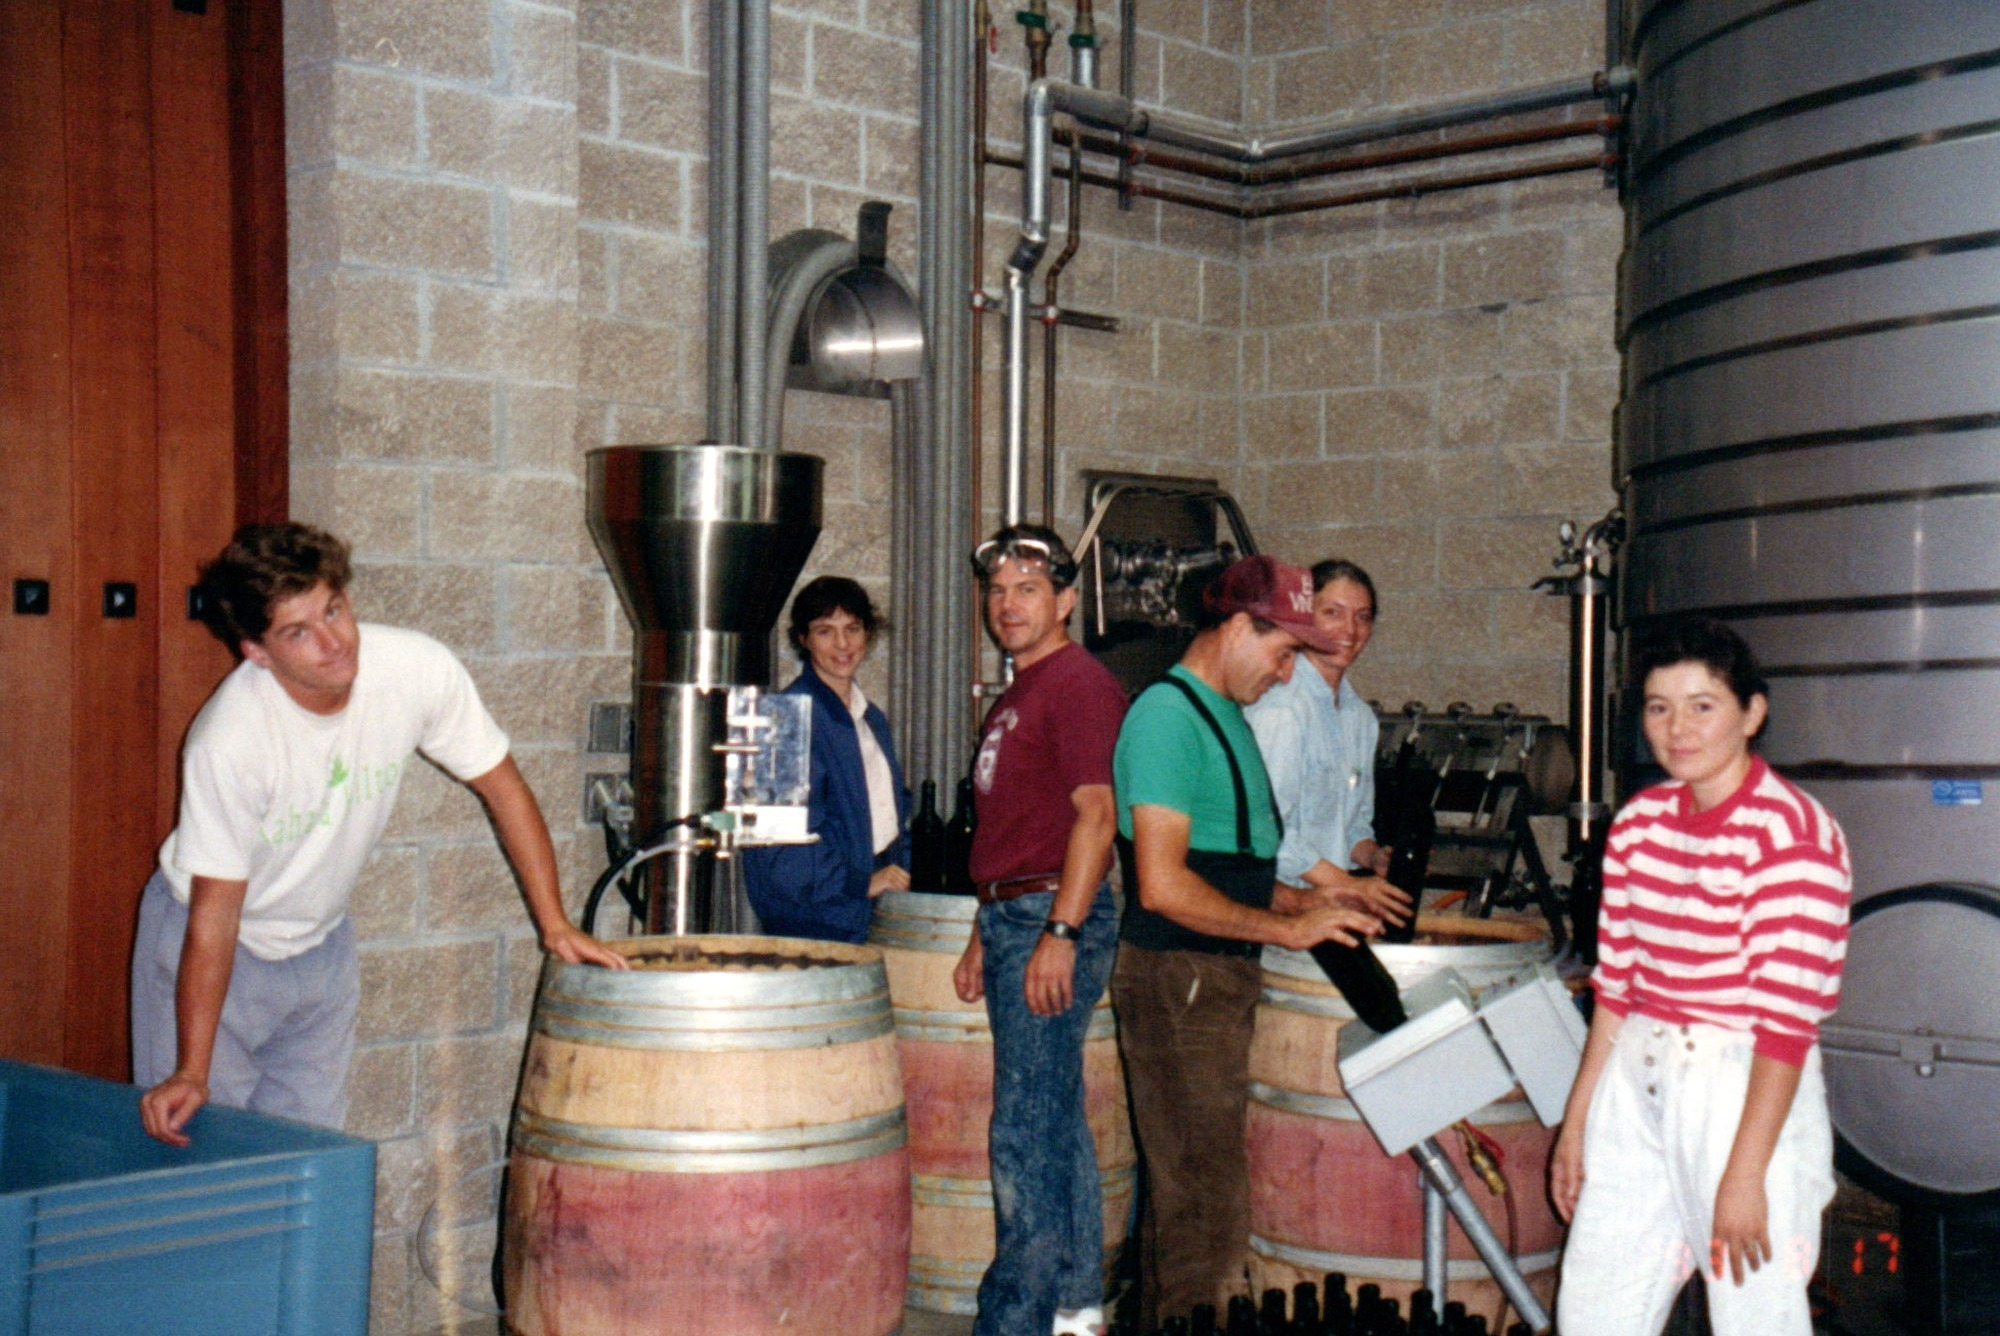 Bart and Greg Araujo with Françoise Peschon and the Araujo Estate winemaking team in the cellar during harvest at Eisele Vineyard. (1993)